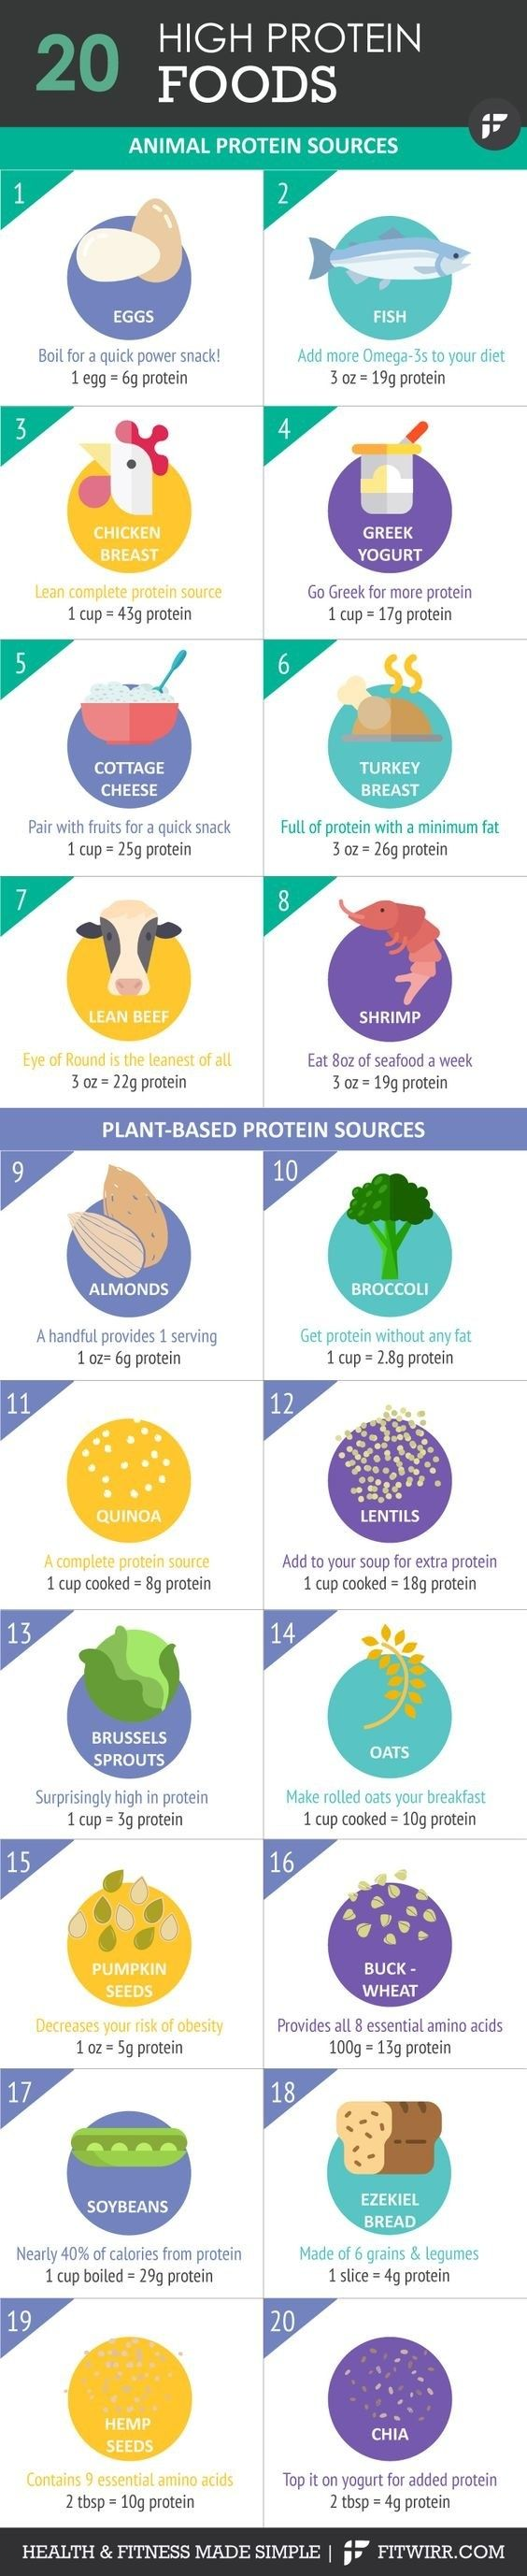 For high-protein foods that could help you build more muscle: #protiendiet